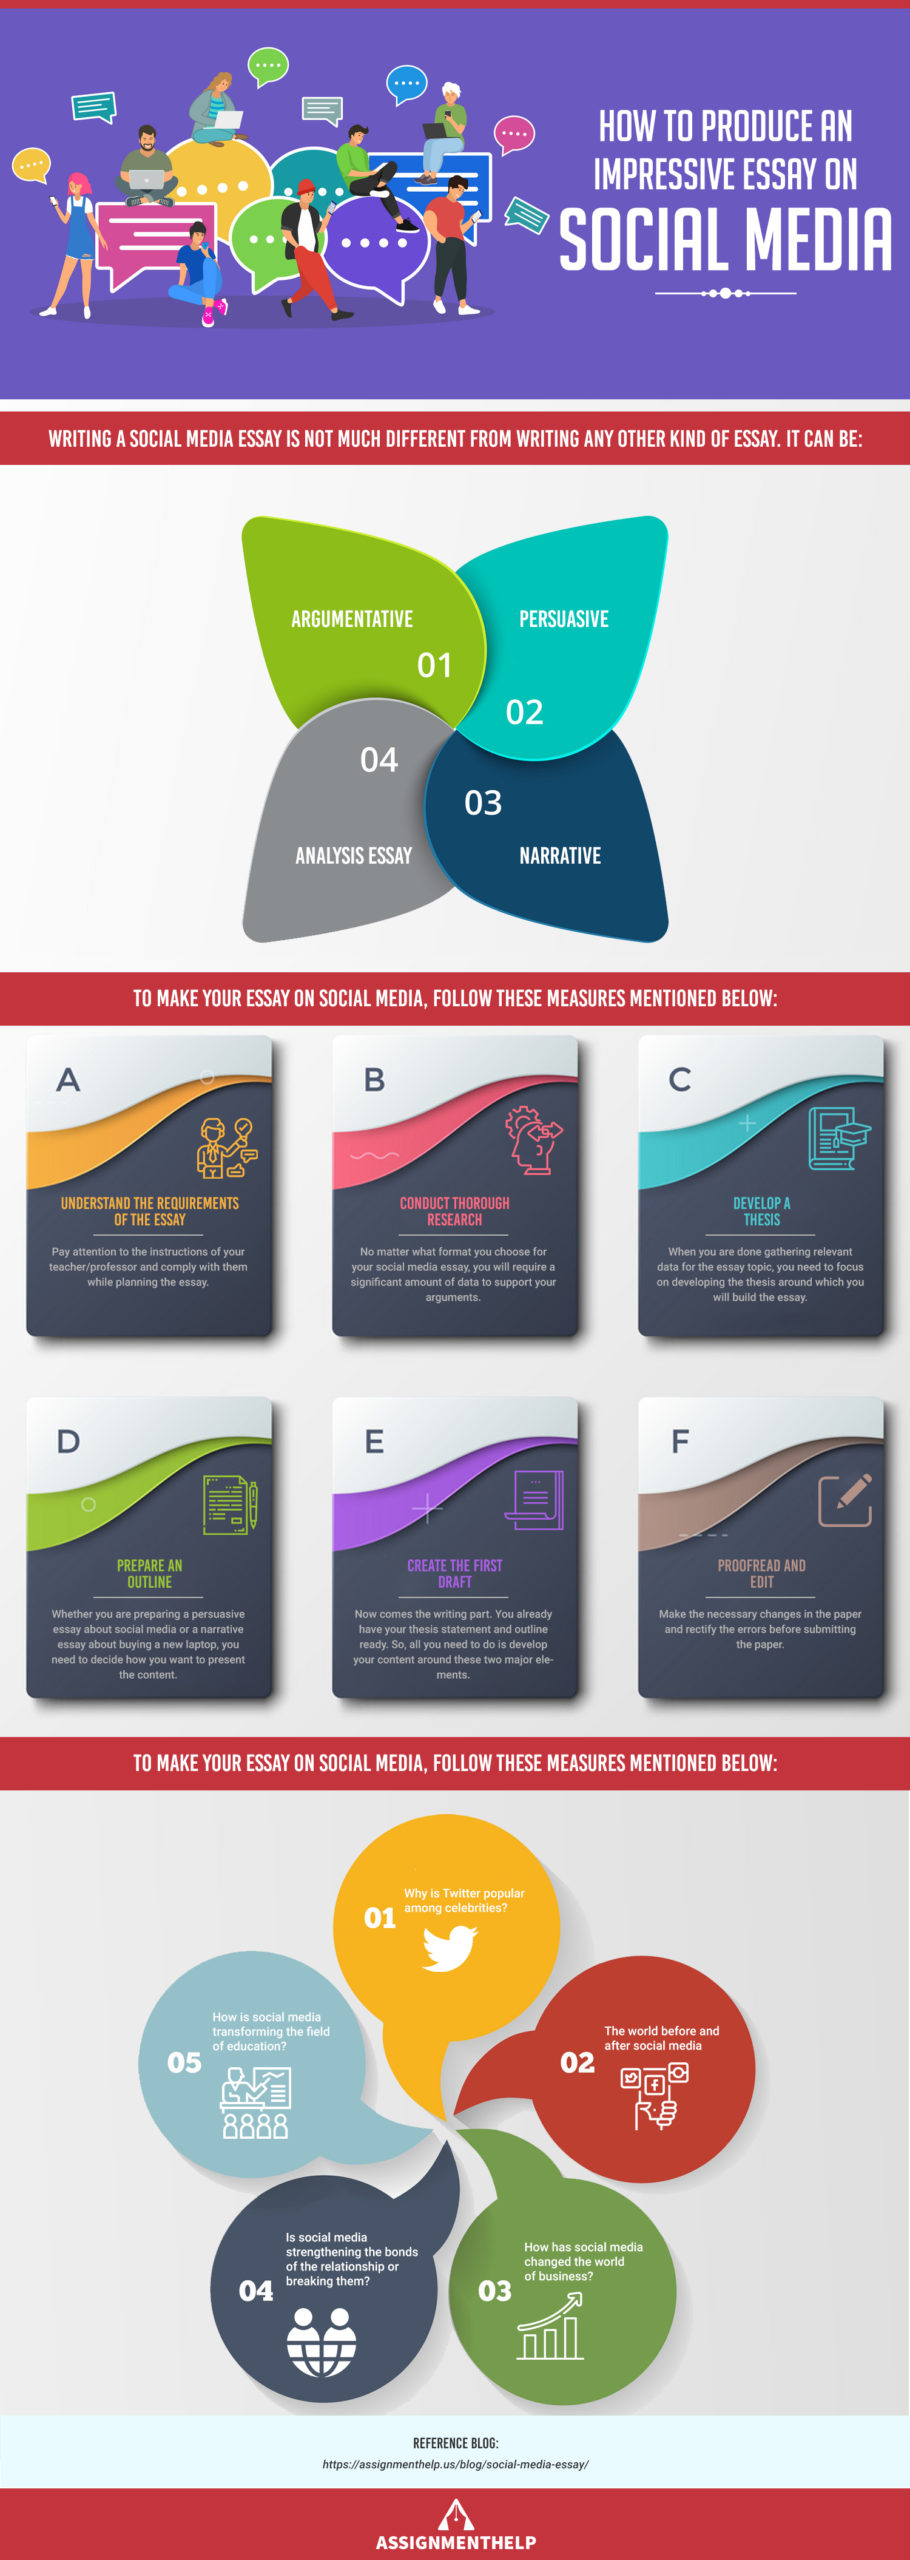 infographics-How-to-Produce-an-Impressive-Essay-on-Social-Media(1) (1)